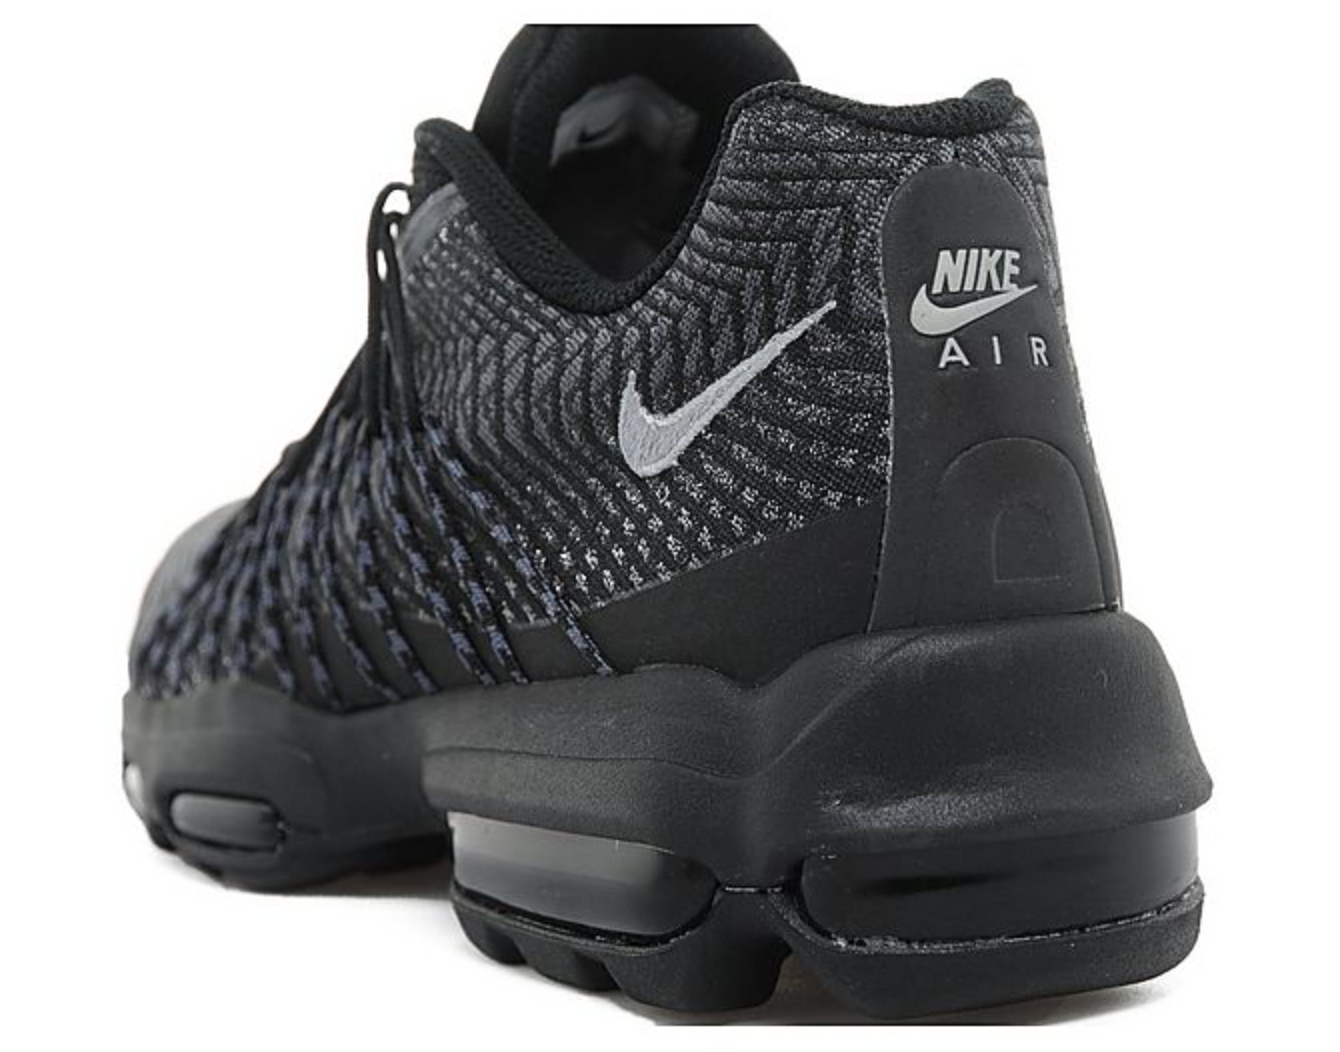 super popular 23bcf d14f3 ... promo code for a close up look of the nike air max 95 jacquard 2015  174cd